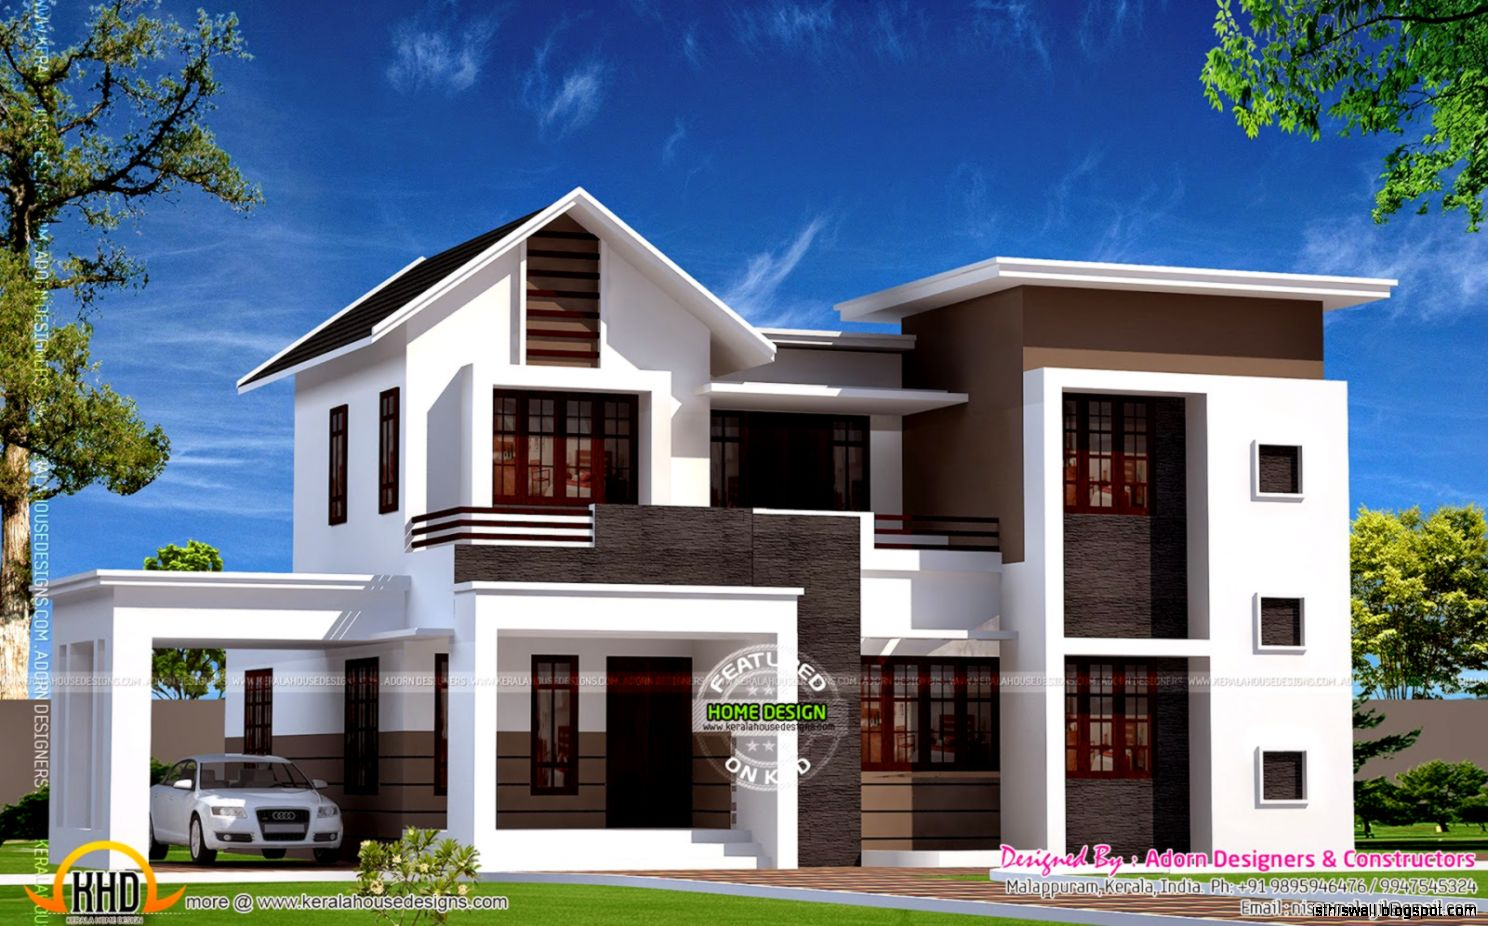 new homes designs photos this wallpapers On kerala house design 2014